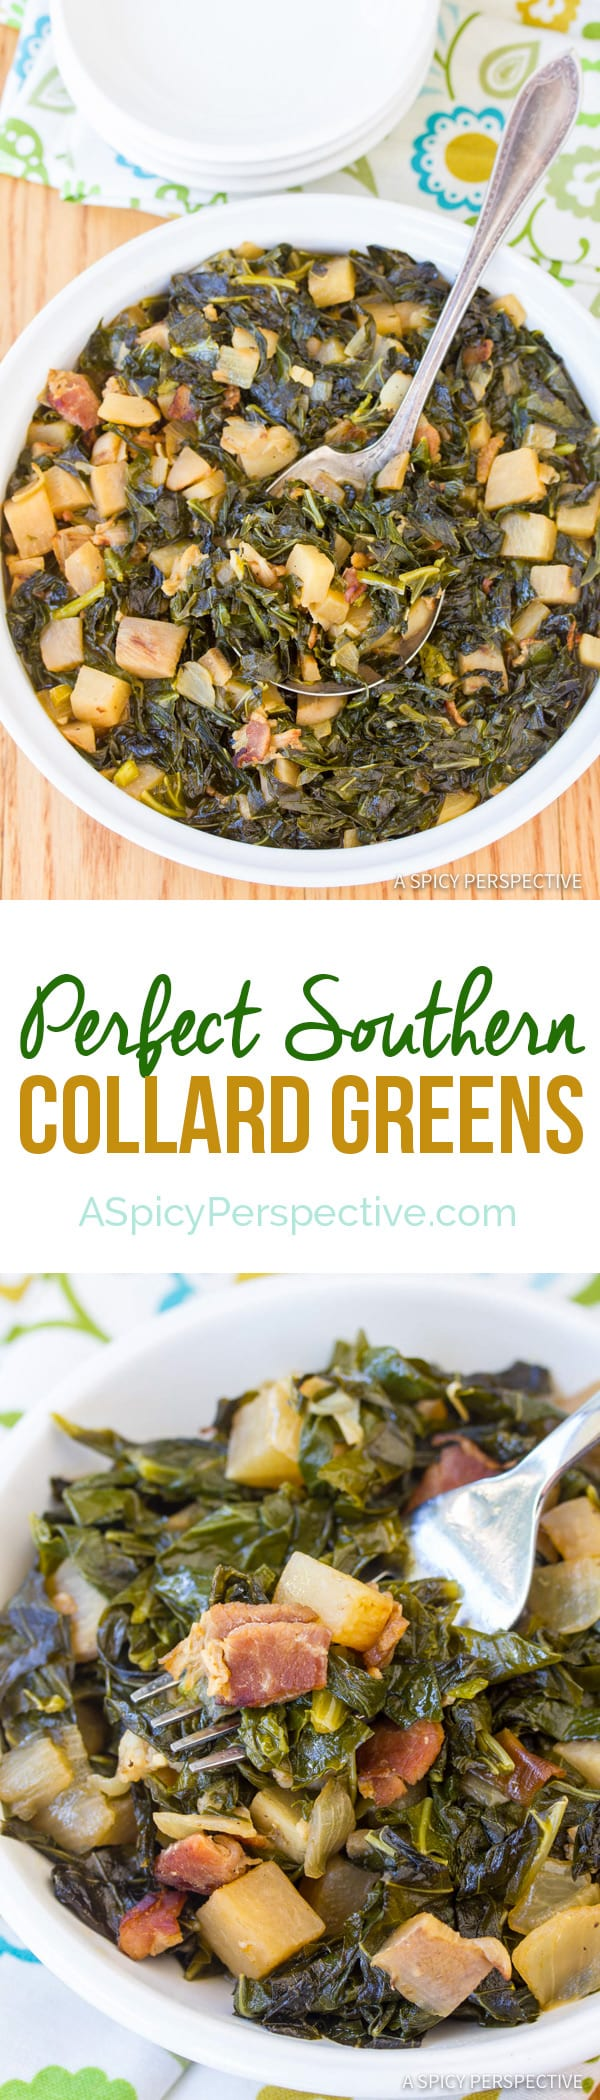 The Perfect Southern Collard Greens | ASpicyPerspective.com